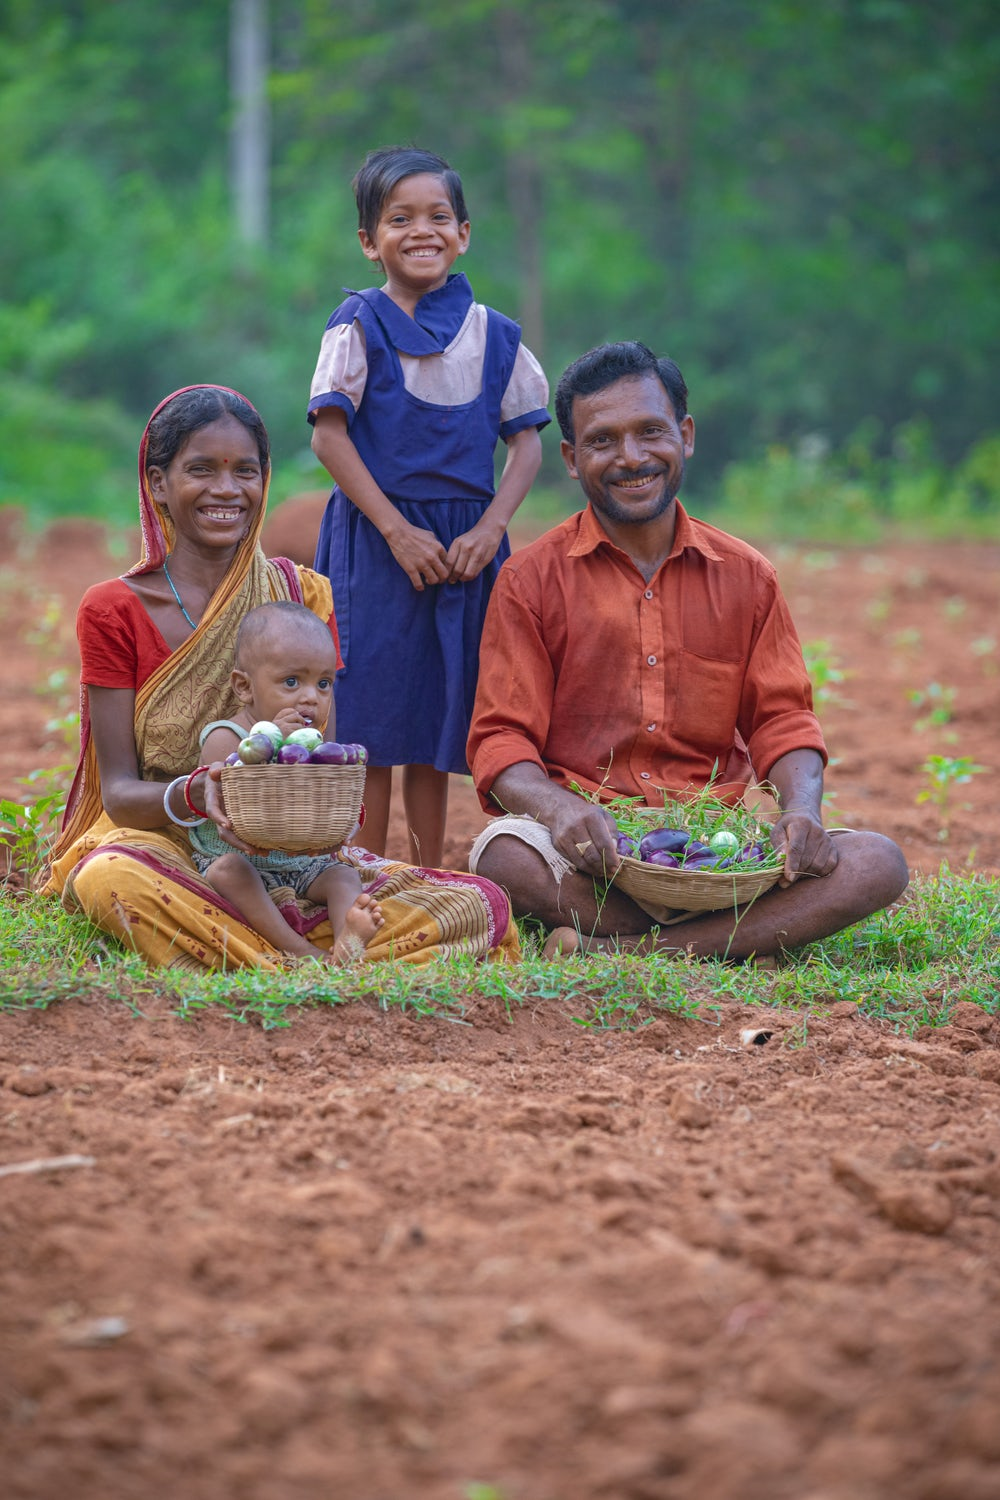 A family of four – a woman and man with a small baby and a toddler – sits on the group and smiles at the camera.